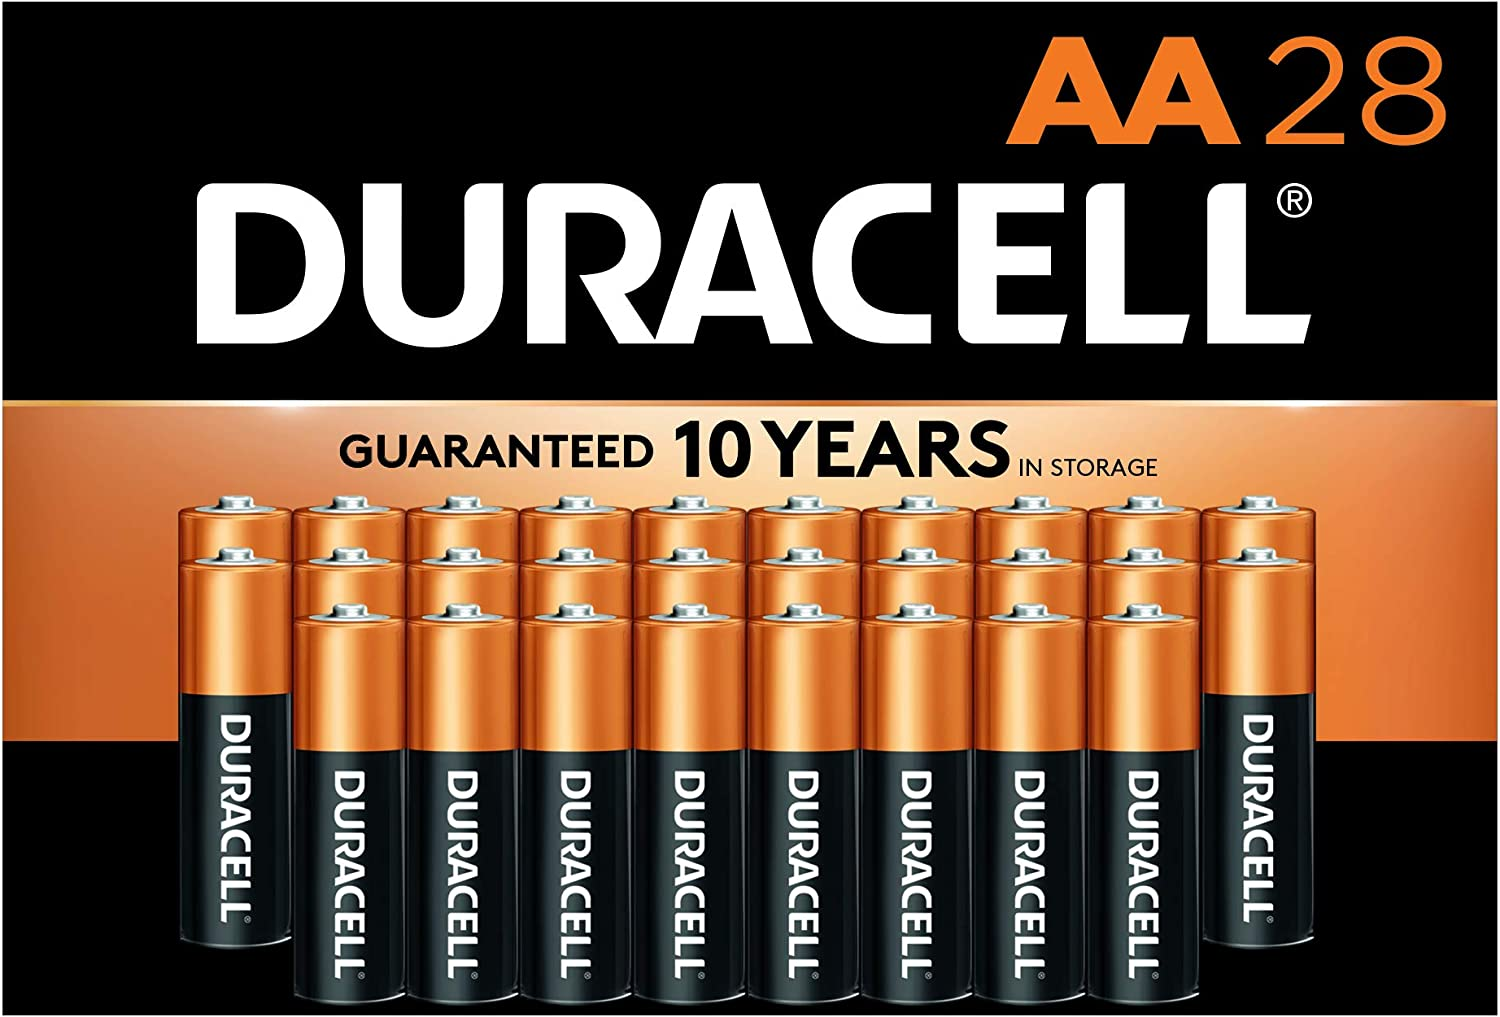 Duracell 28-Count CopperTop AA Alkaline Batteries $9.20 Coupon